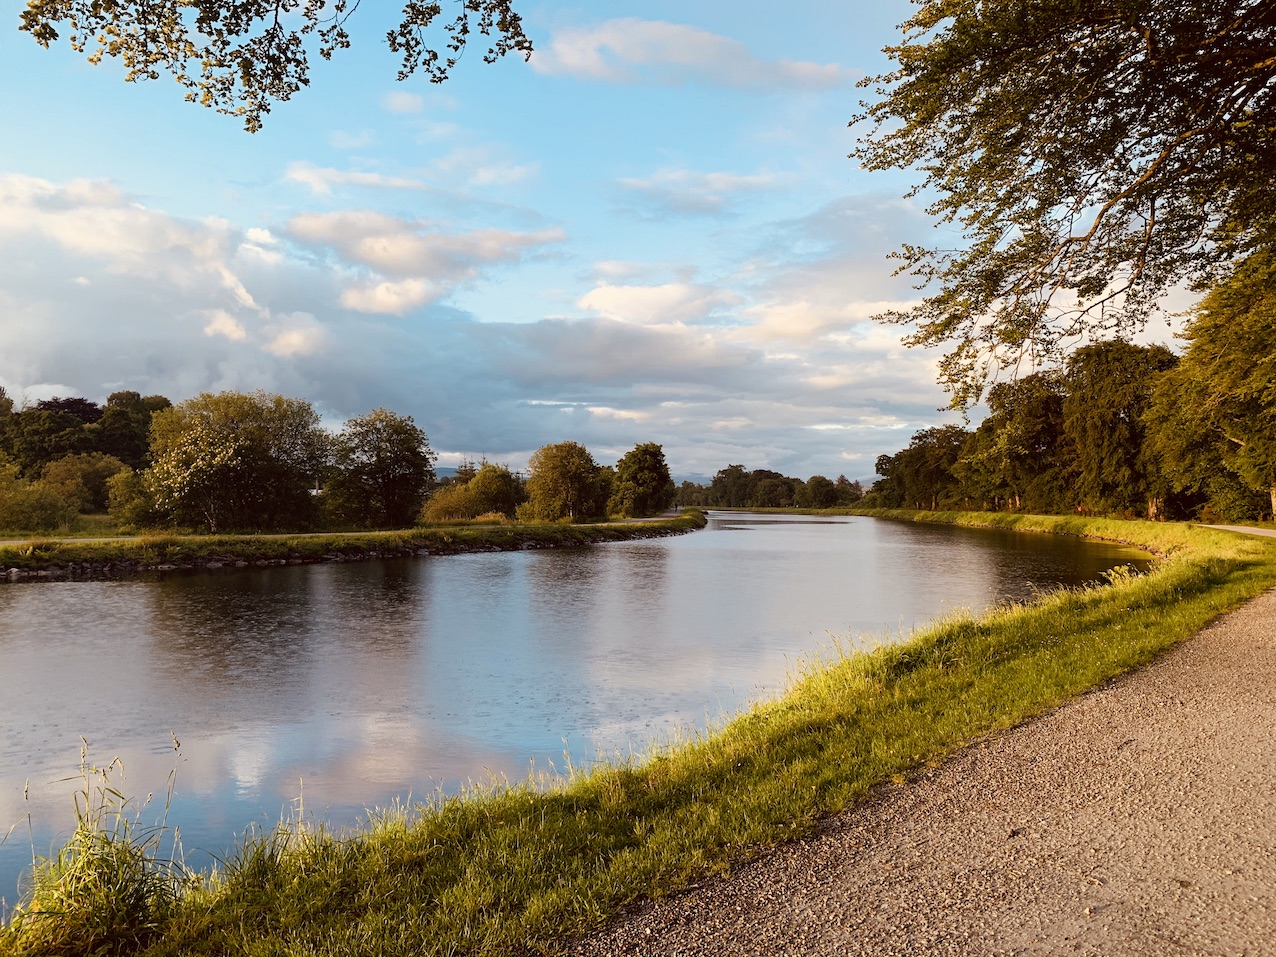 The Caledonian Canal Corpach Scotland.